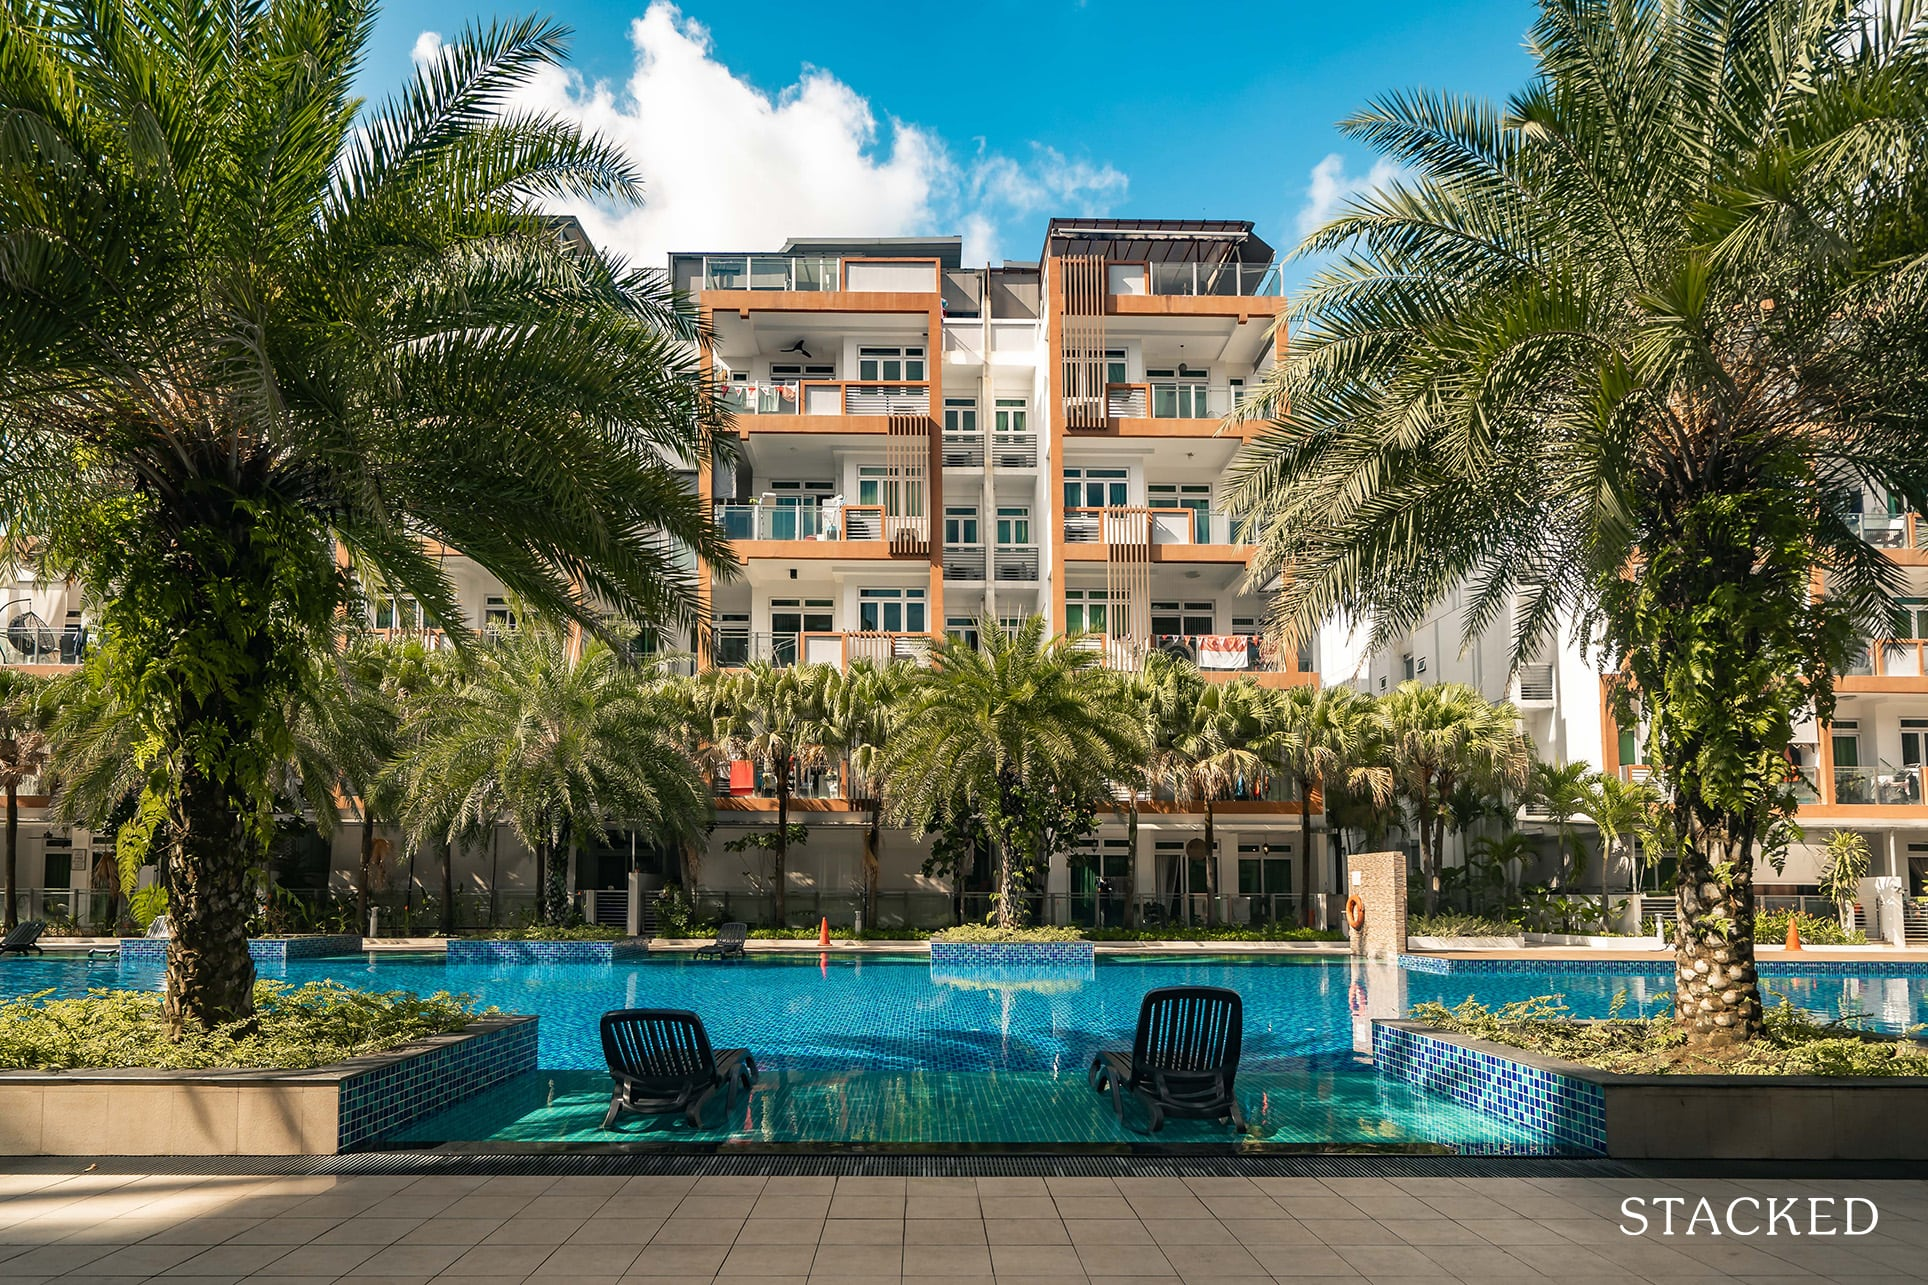 parc rosewood main pool deck chairs